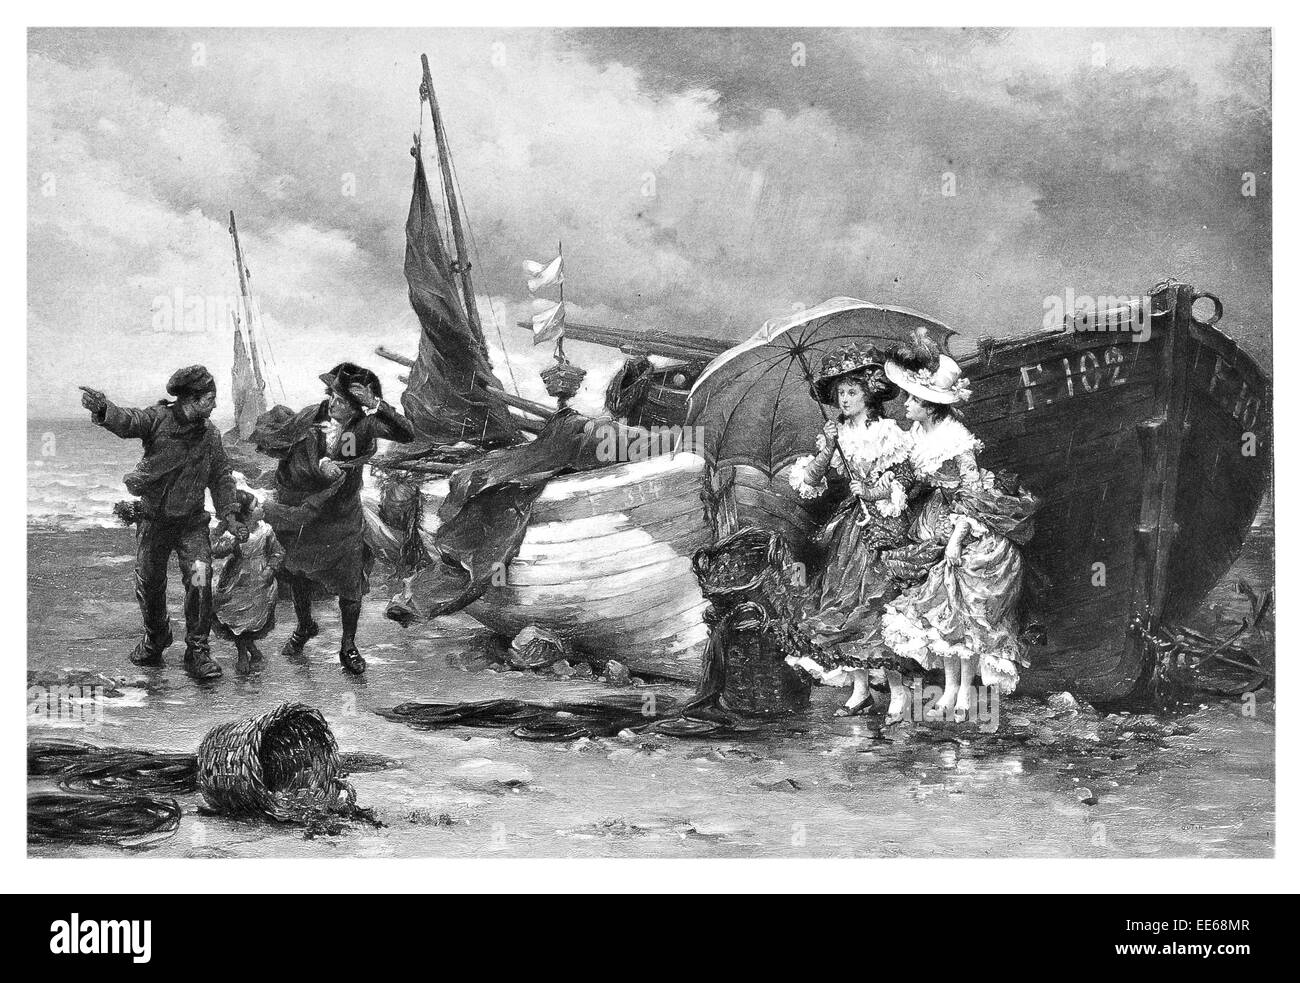 A coming shower Pierre Outin ship landing landed gale force winds wind captain Victorian era lady ladies umbrella - Stock Image